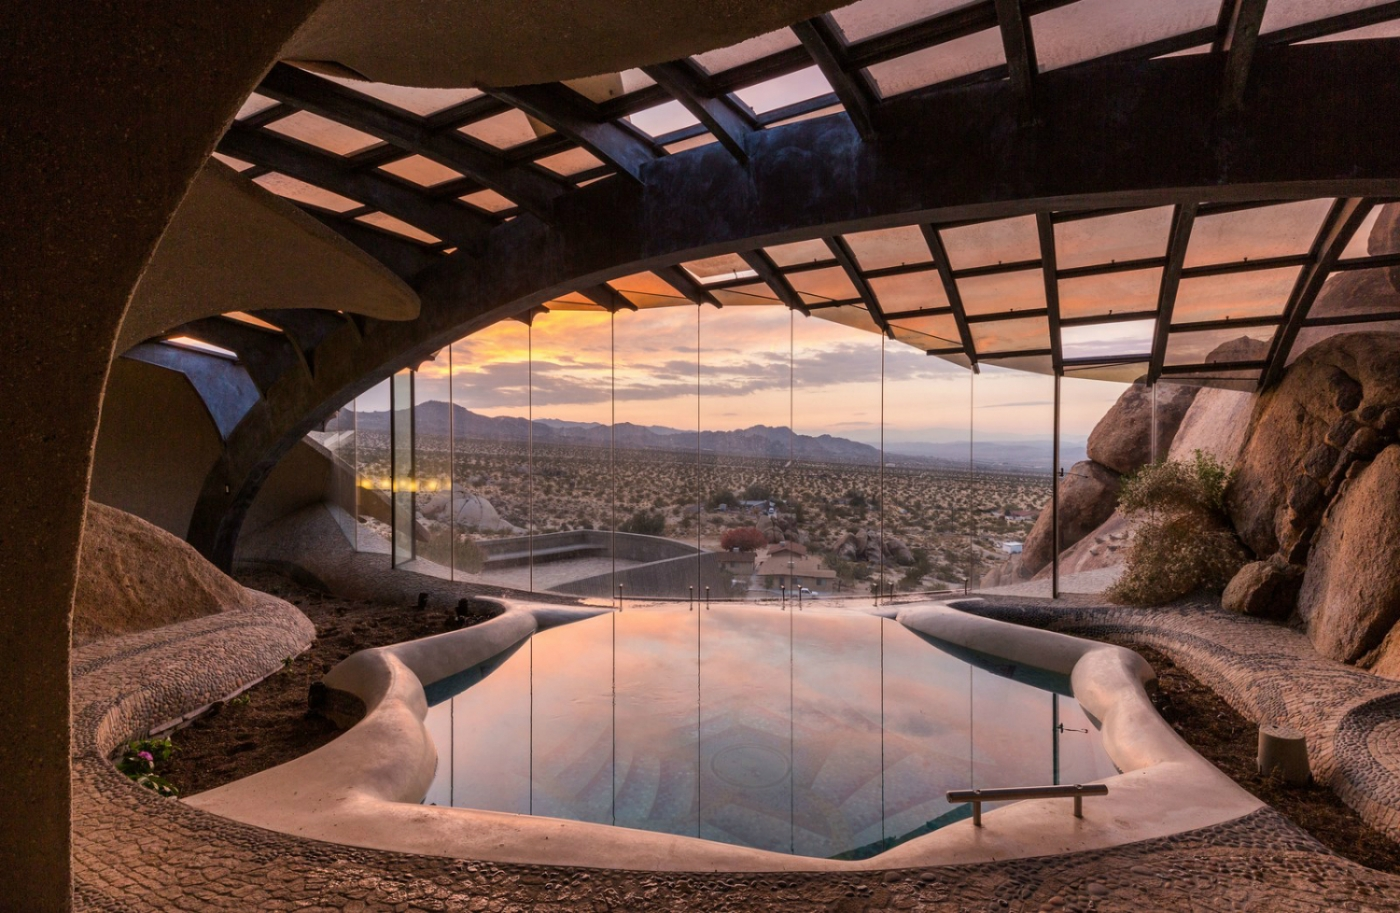 architecture art Doolittle House, An Example of Organic Architecture Art in Joshua Tree Doolittle House An Example of Organic Architecture in Joshua Tree feature 1400x913